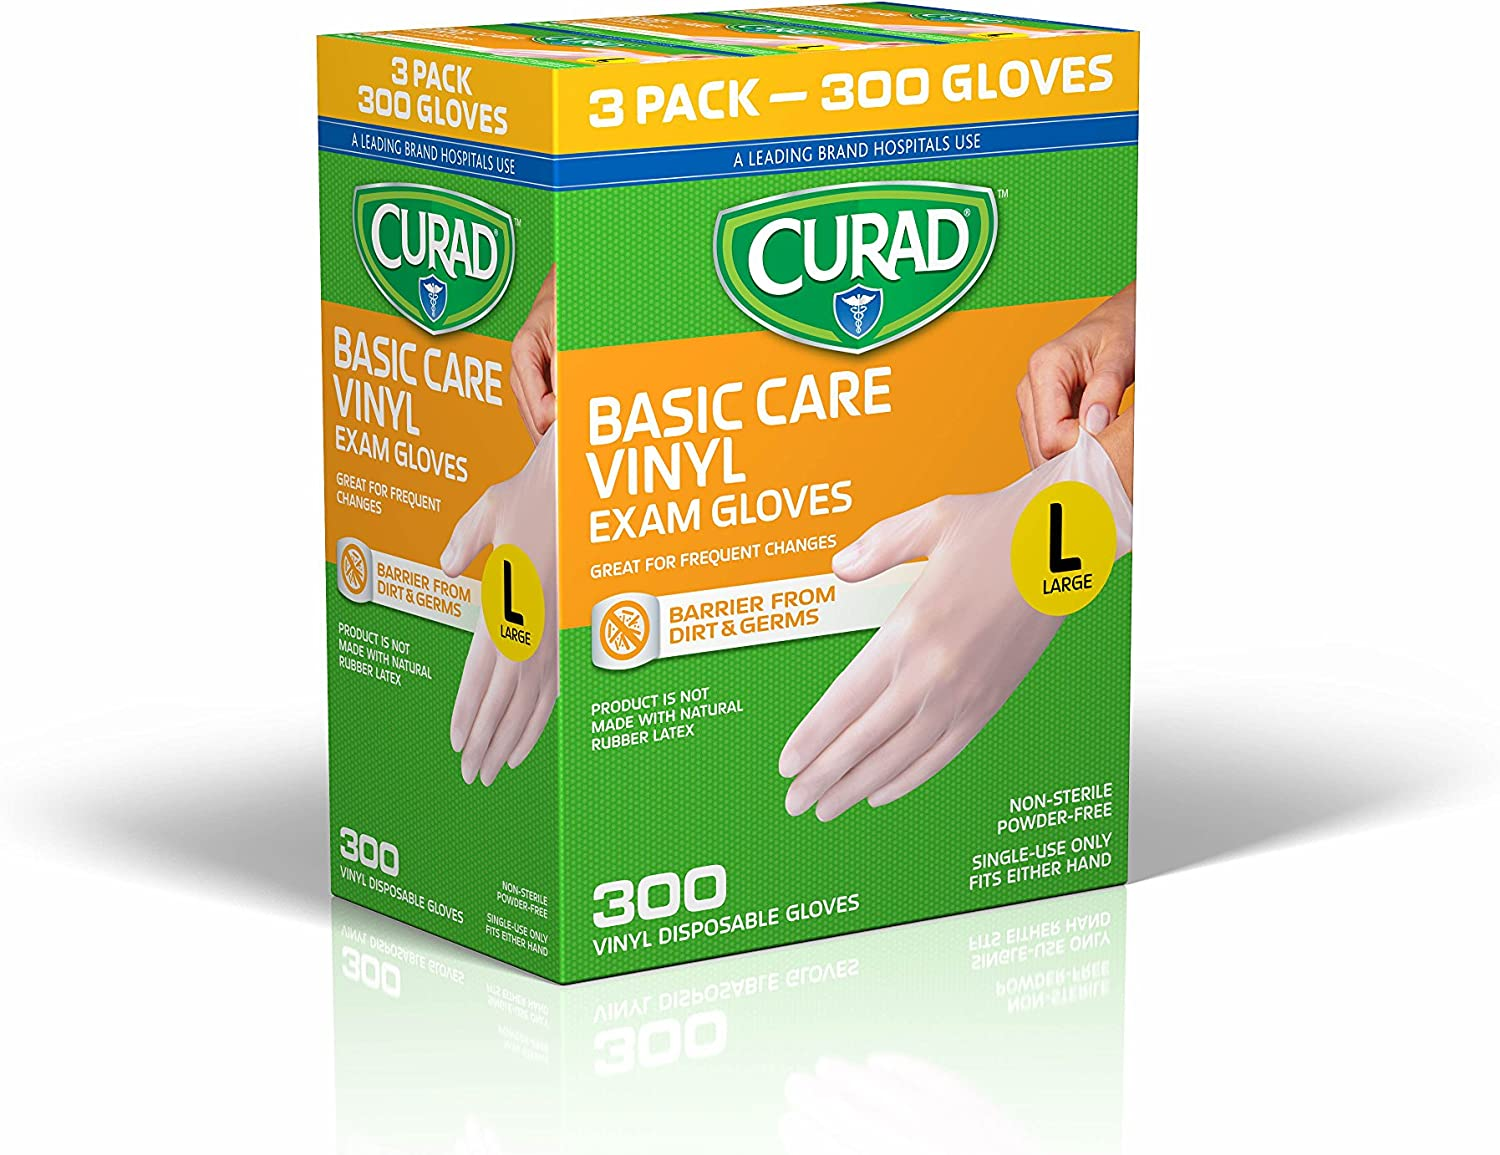 CURAD Basic Care Vinyl Disposable Exam Gloves, Large (Pack of 300) 81AikiCwnRL